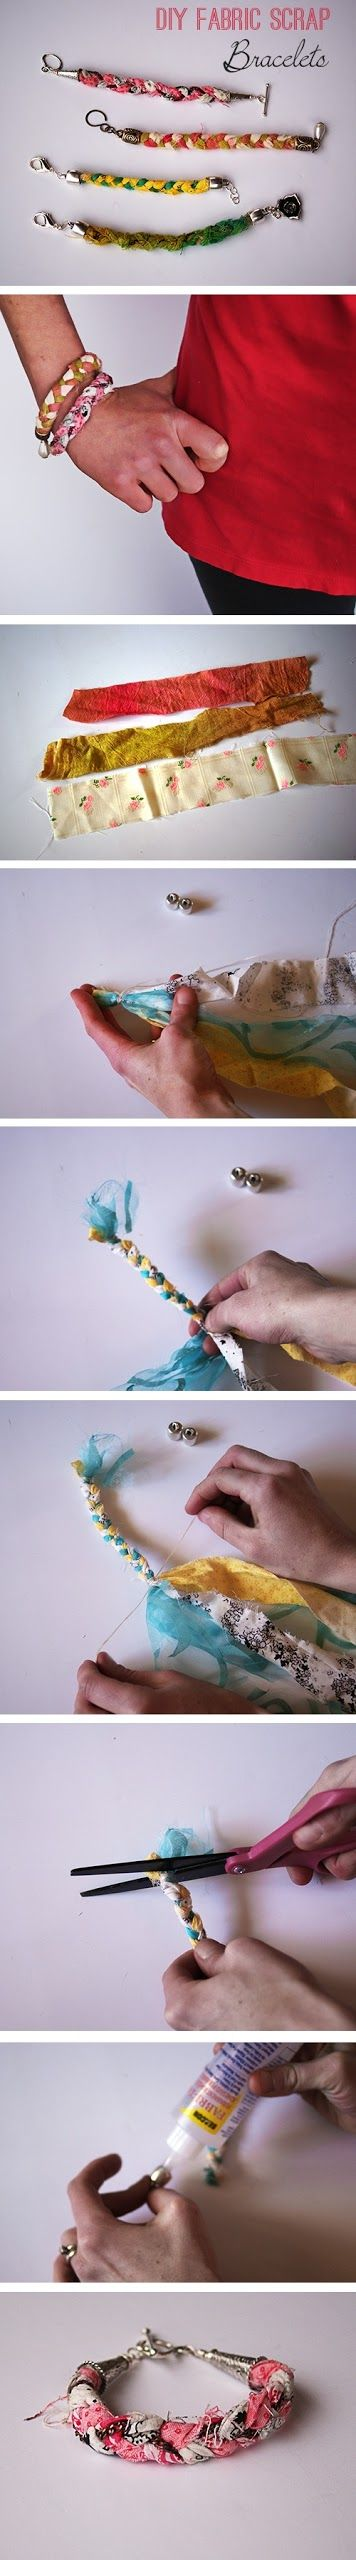 Diy : Easy Scrap Fabric Bracelet @Kristen Gray i found a solution!!! #scrapfabric